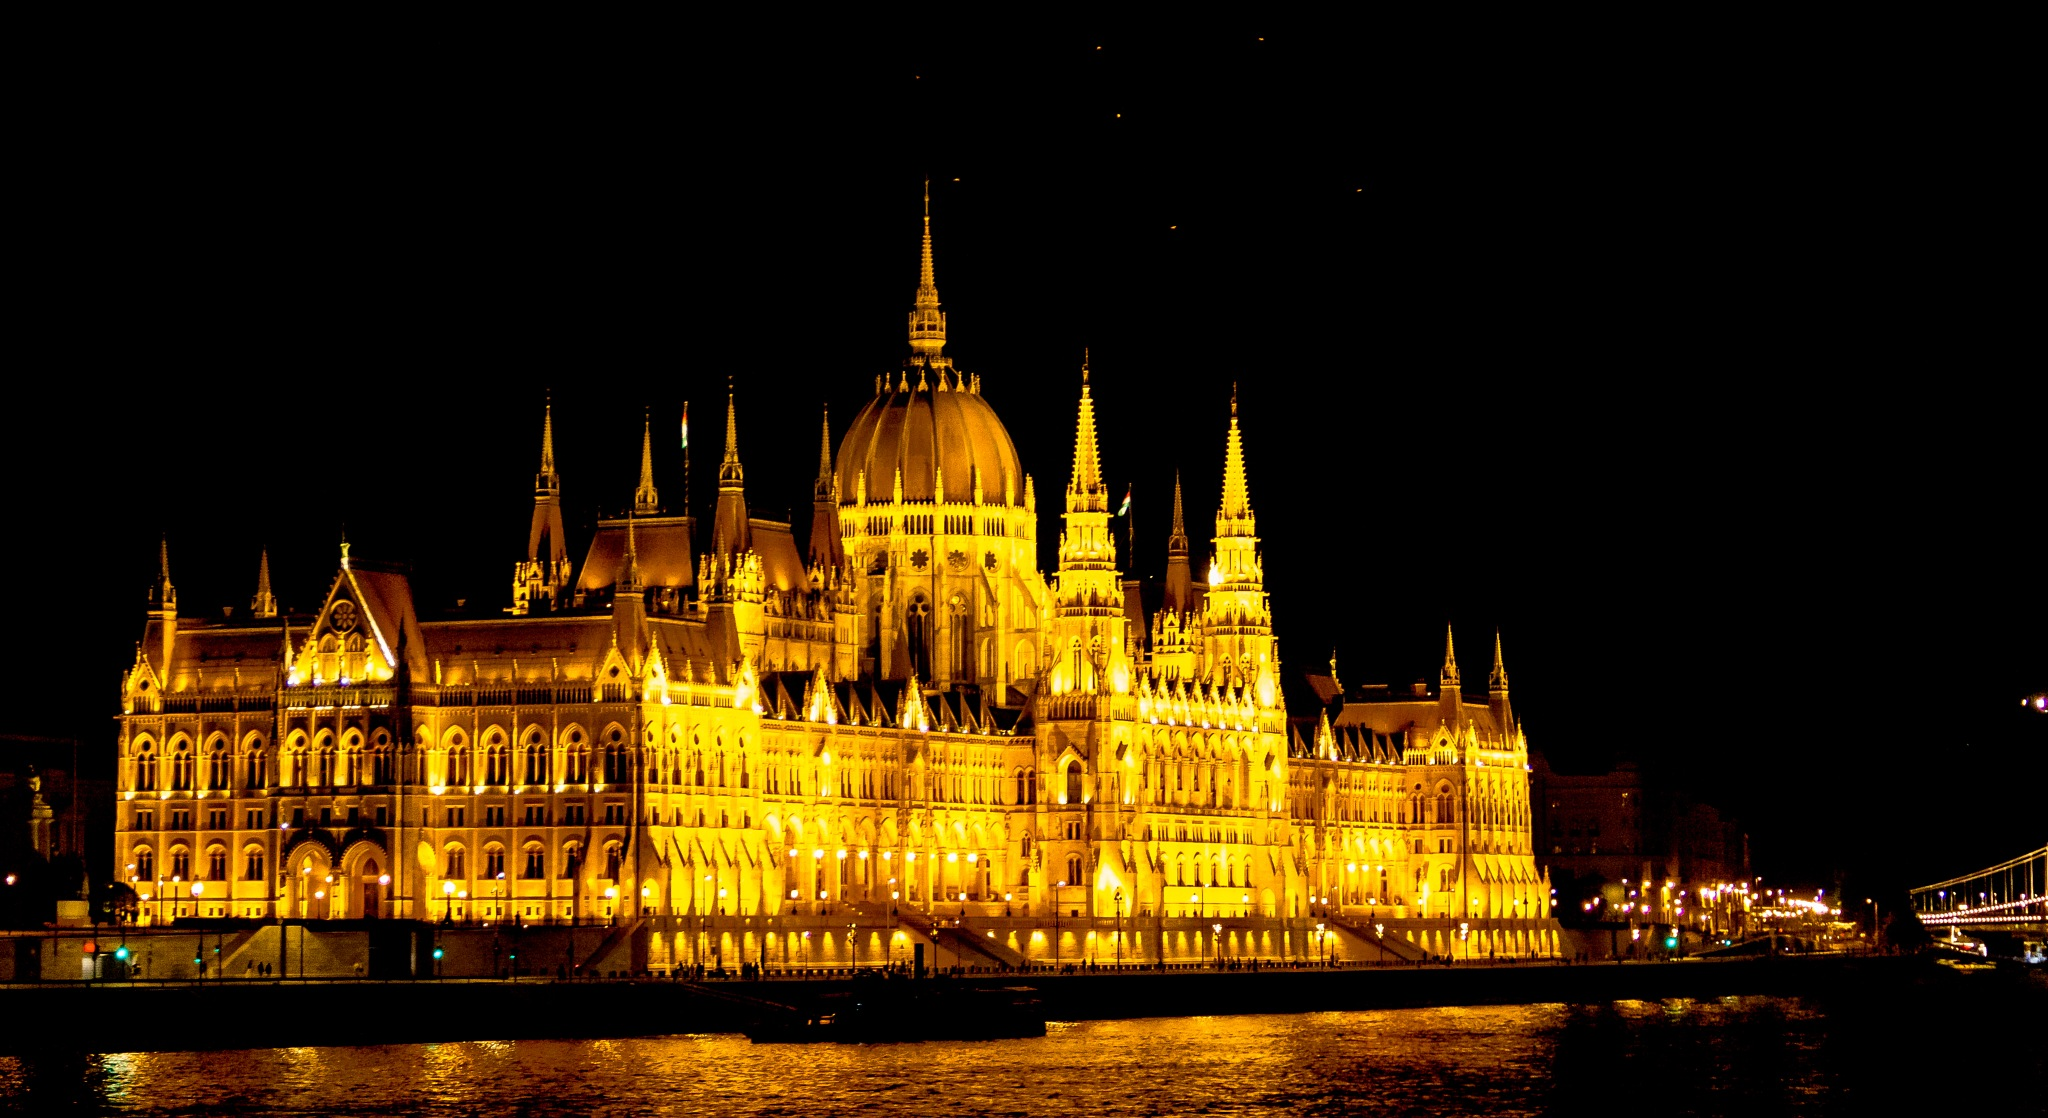 Night Parliament  by Rishi Jain